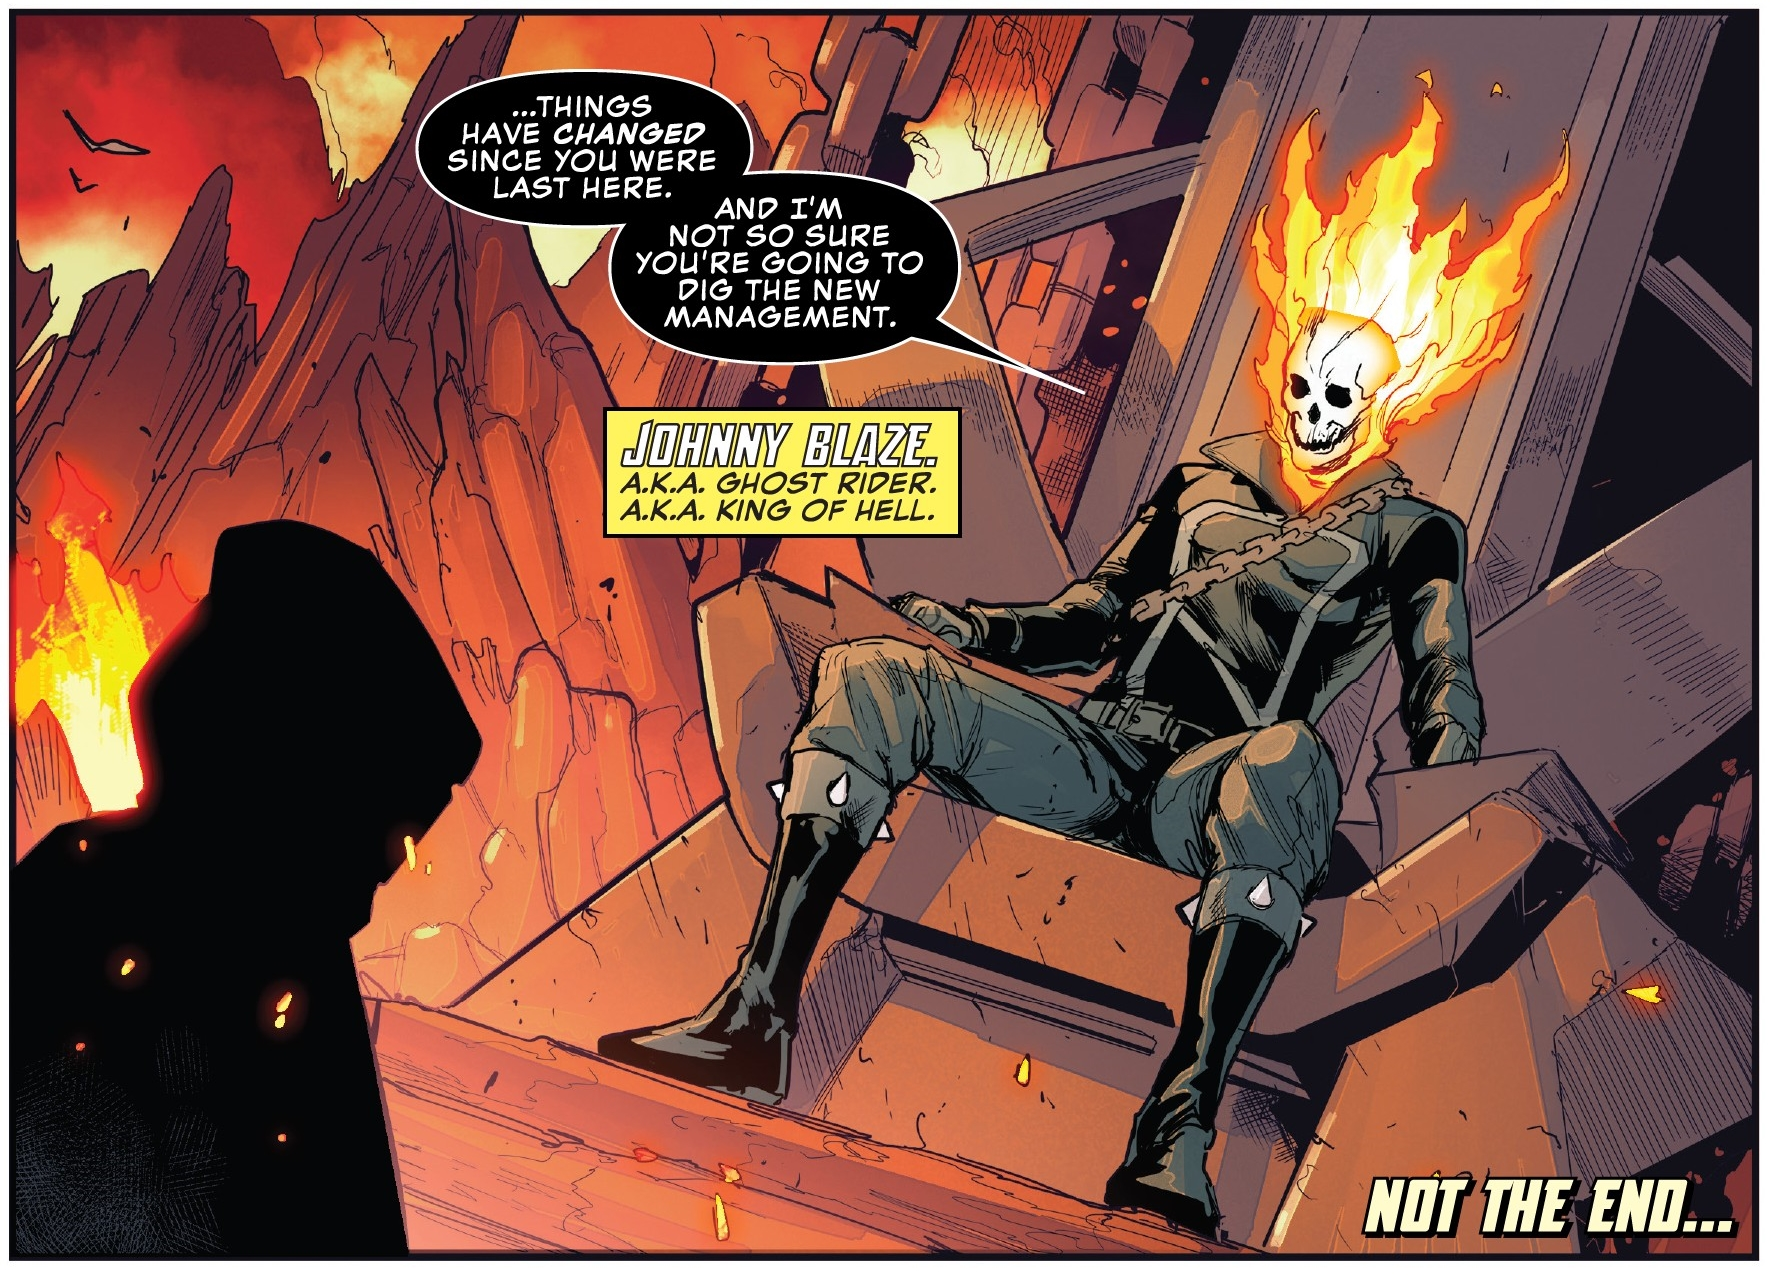 Sinners Beware... Marvel Comics Launches New Johnny Blaze: Ghost Rider Comic in October